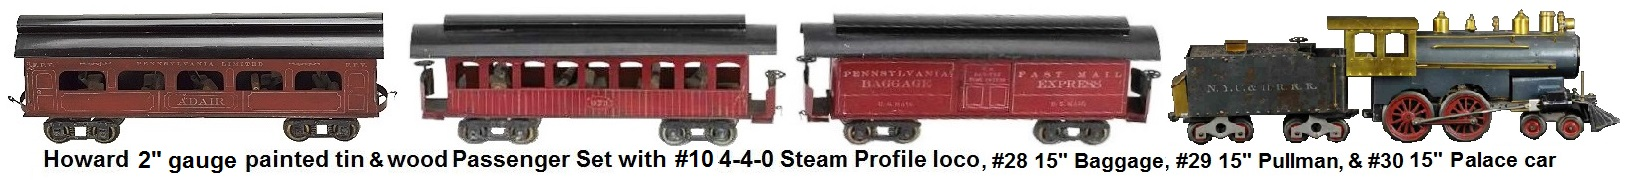 Howard #10 4-4-0 steam profile loco with #28 baggage car, #29 Pullman Chair passenger coach and #30 Pullman Palace sleeper car in 2 inch gauge bearing the Pennsylvania Lines livery